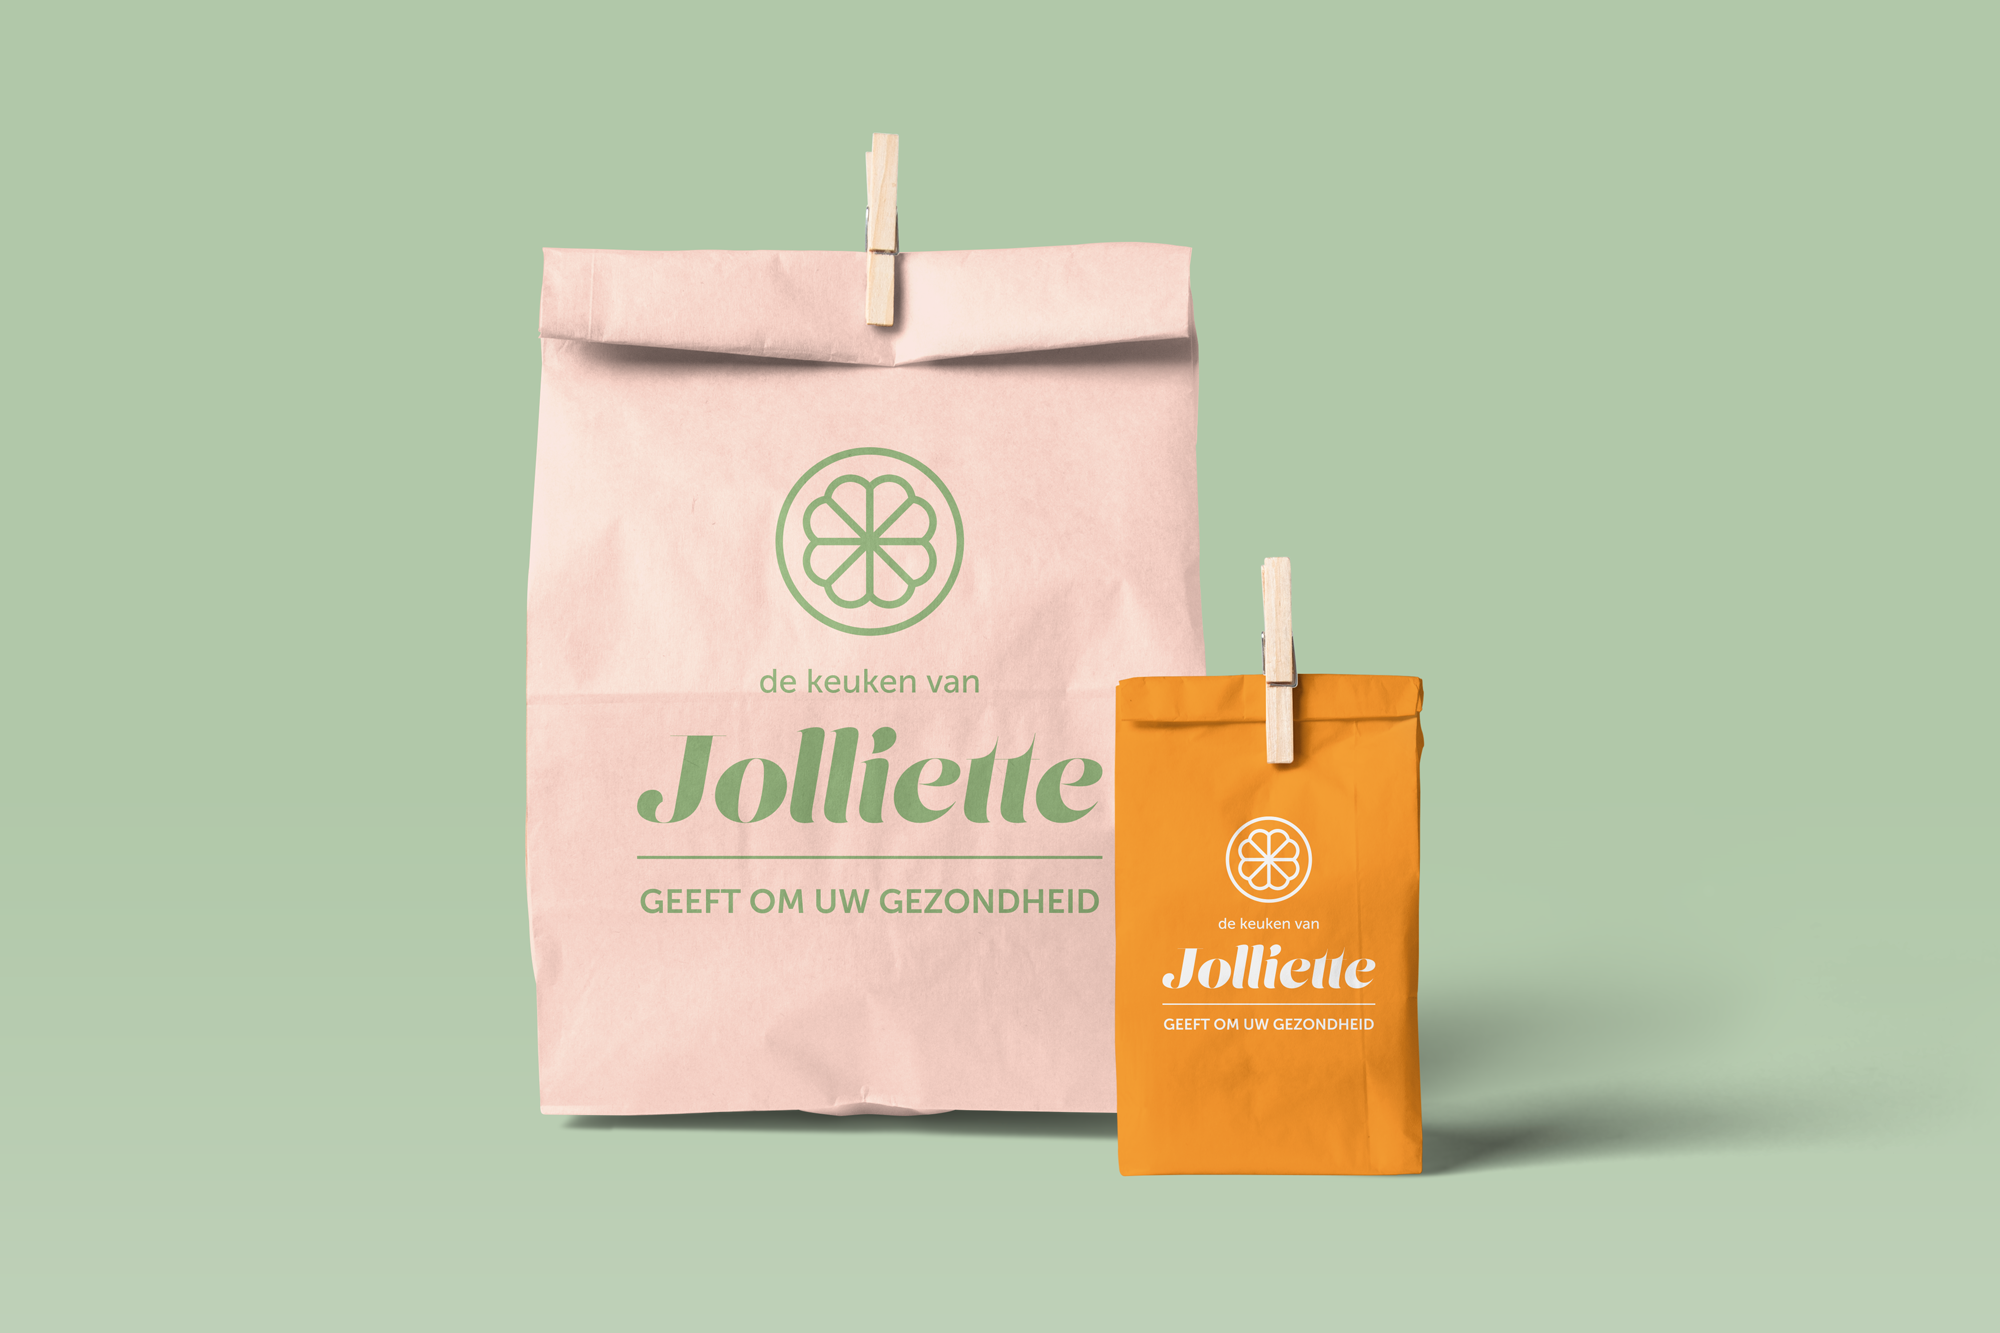 Jolliette pop-up healthy food shop branding packaging design